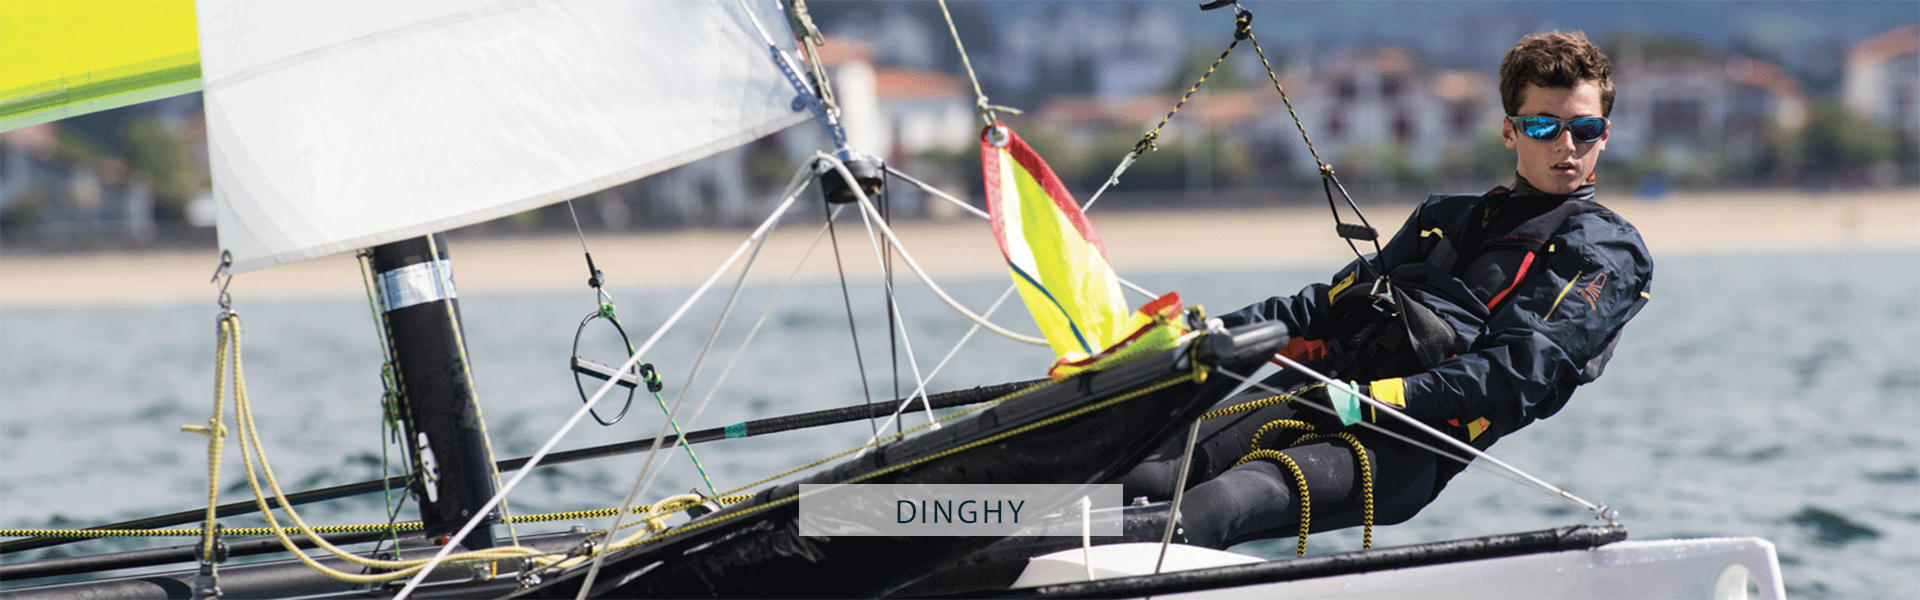 Tribord dinghy